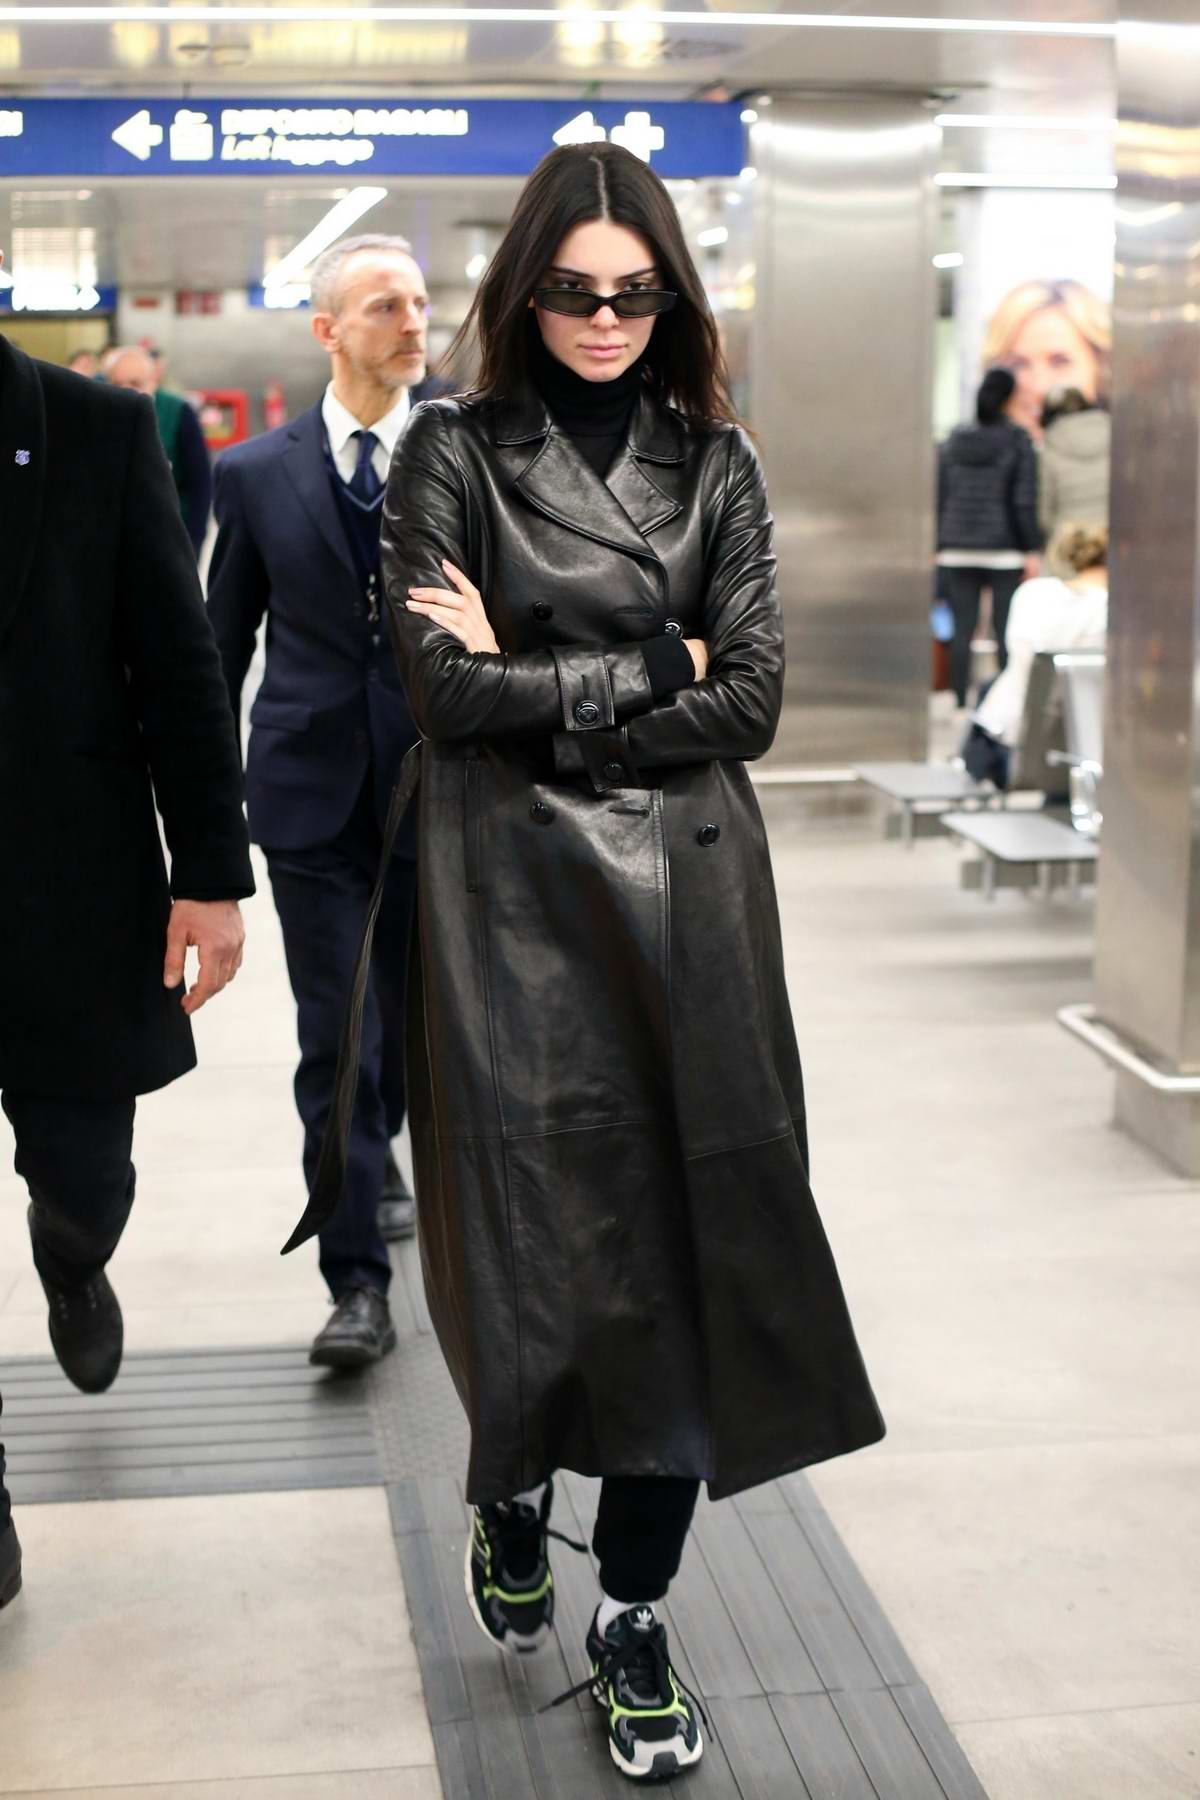 Kendall Jenner dressed in a long leather coat arrives for Milan Fashion Week in Milan, Italy